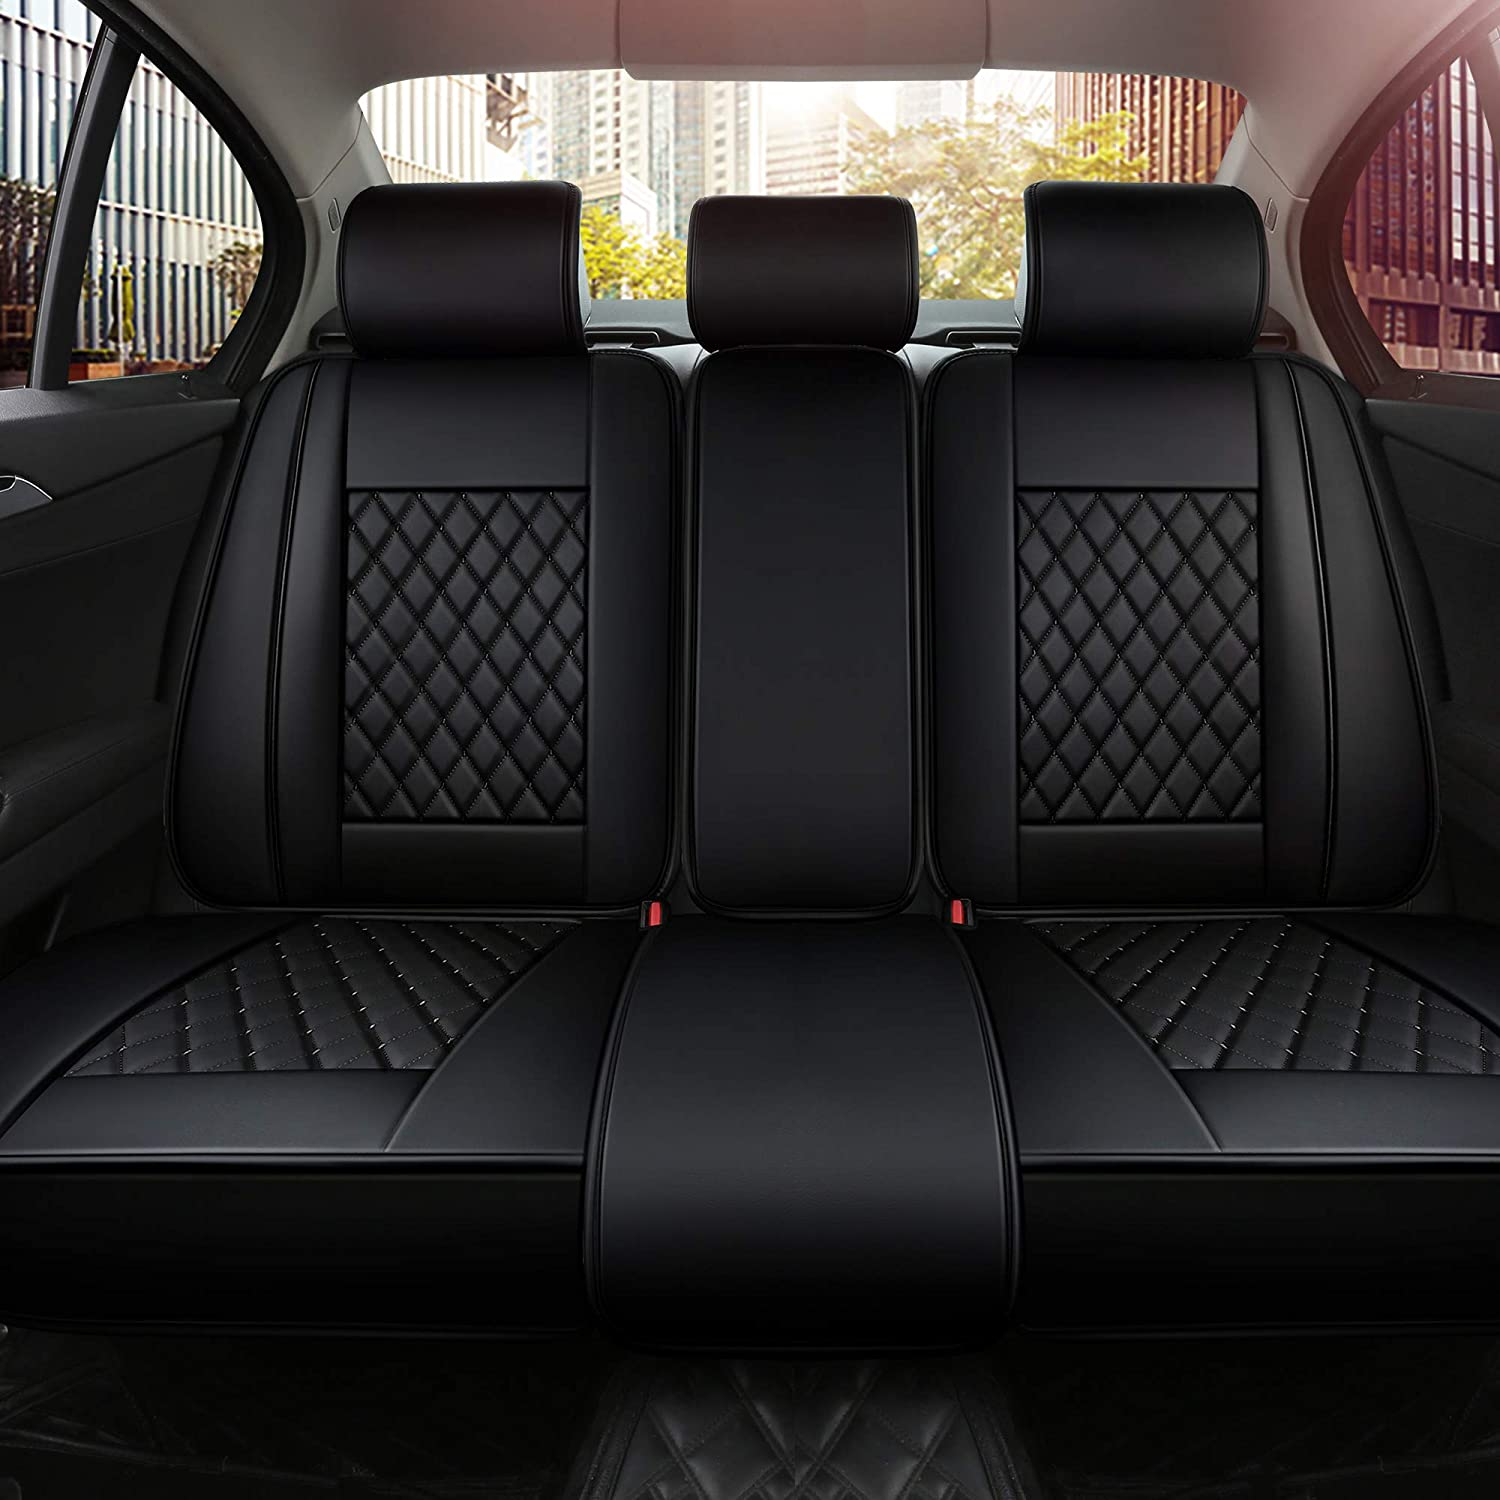 INCH EMPIRE Only Rear/Back Seats Car Seat Cover PU Leather- Anti-Slip Suede Backing Universal Fit Car Seat Cushion for Both Fabric and Leather Seats(Rear Black Grid)